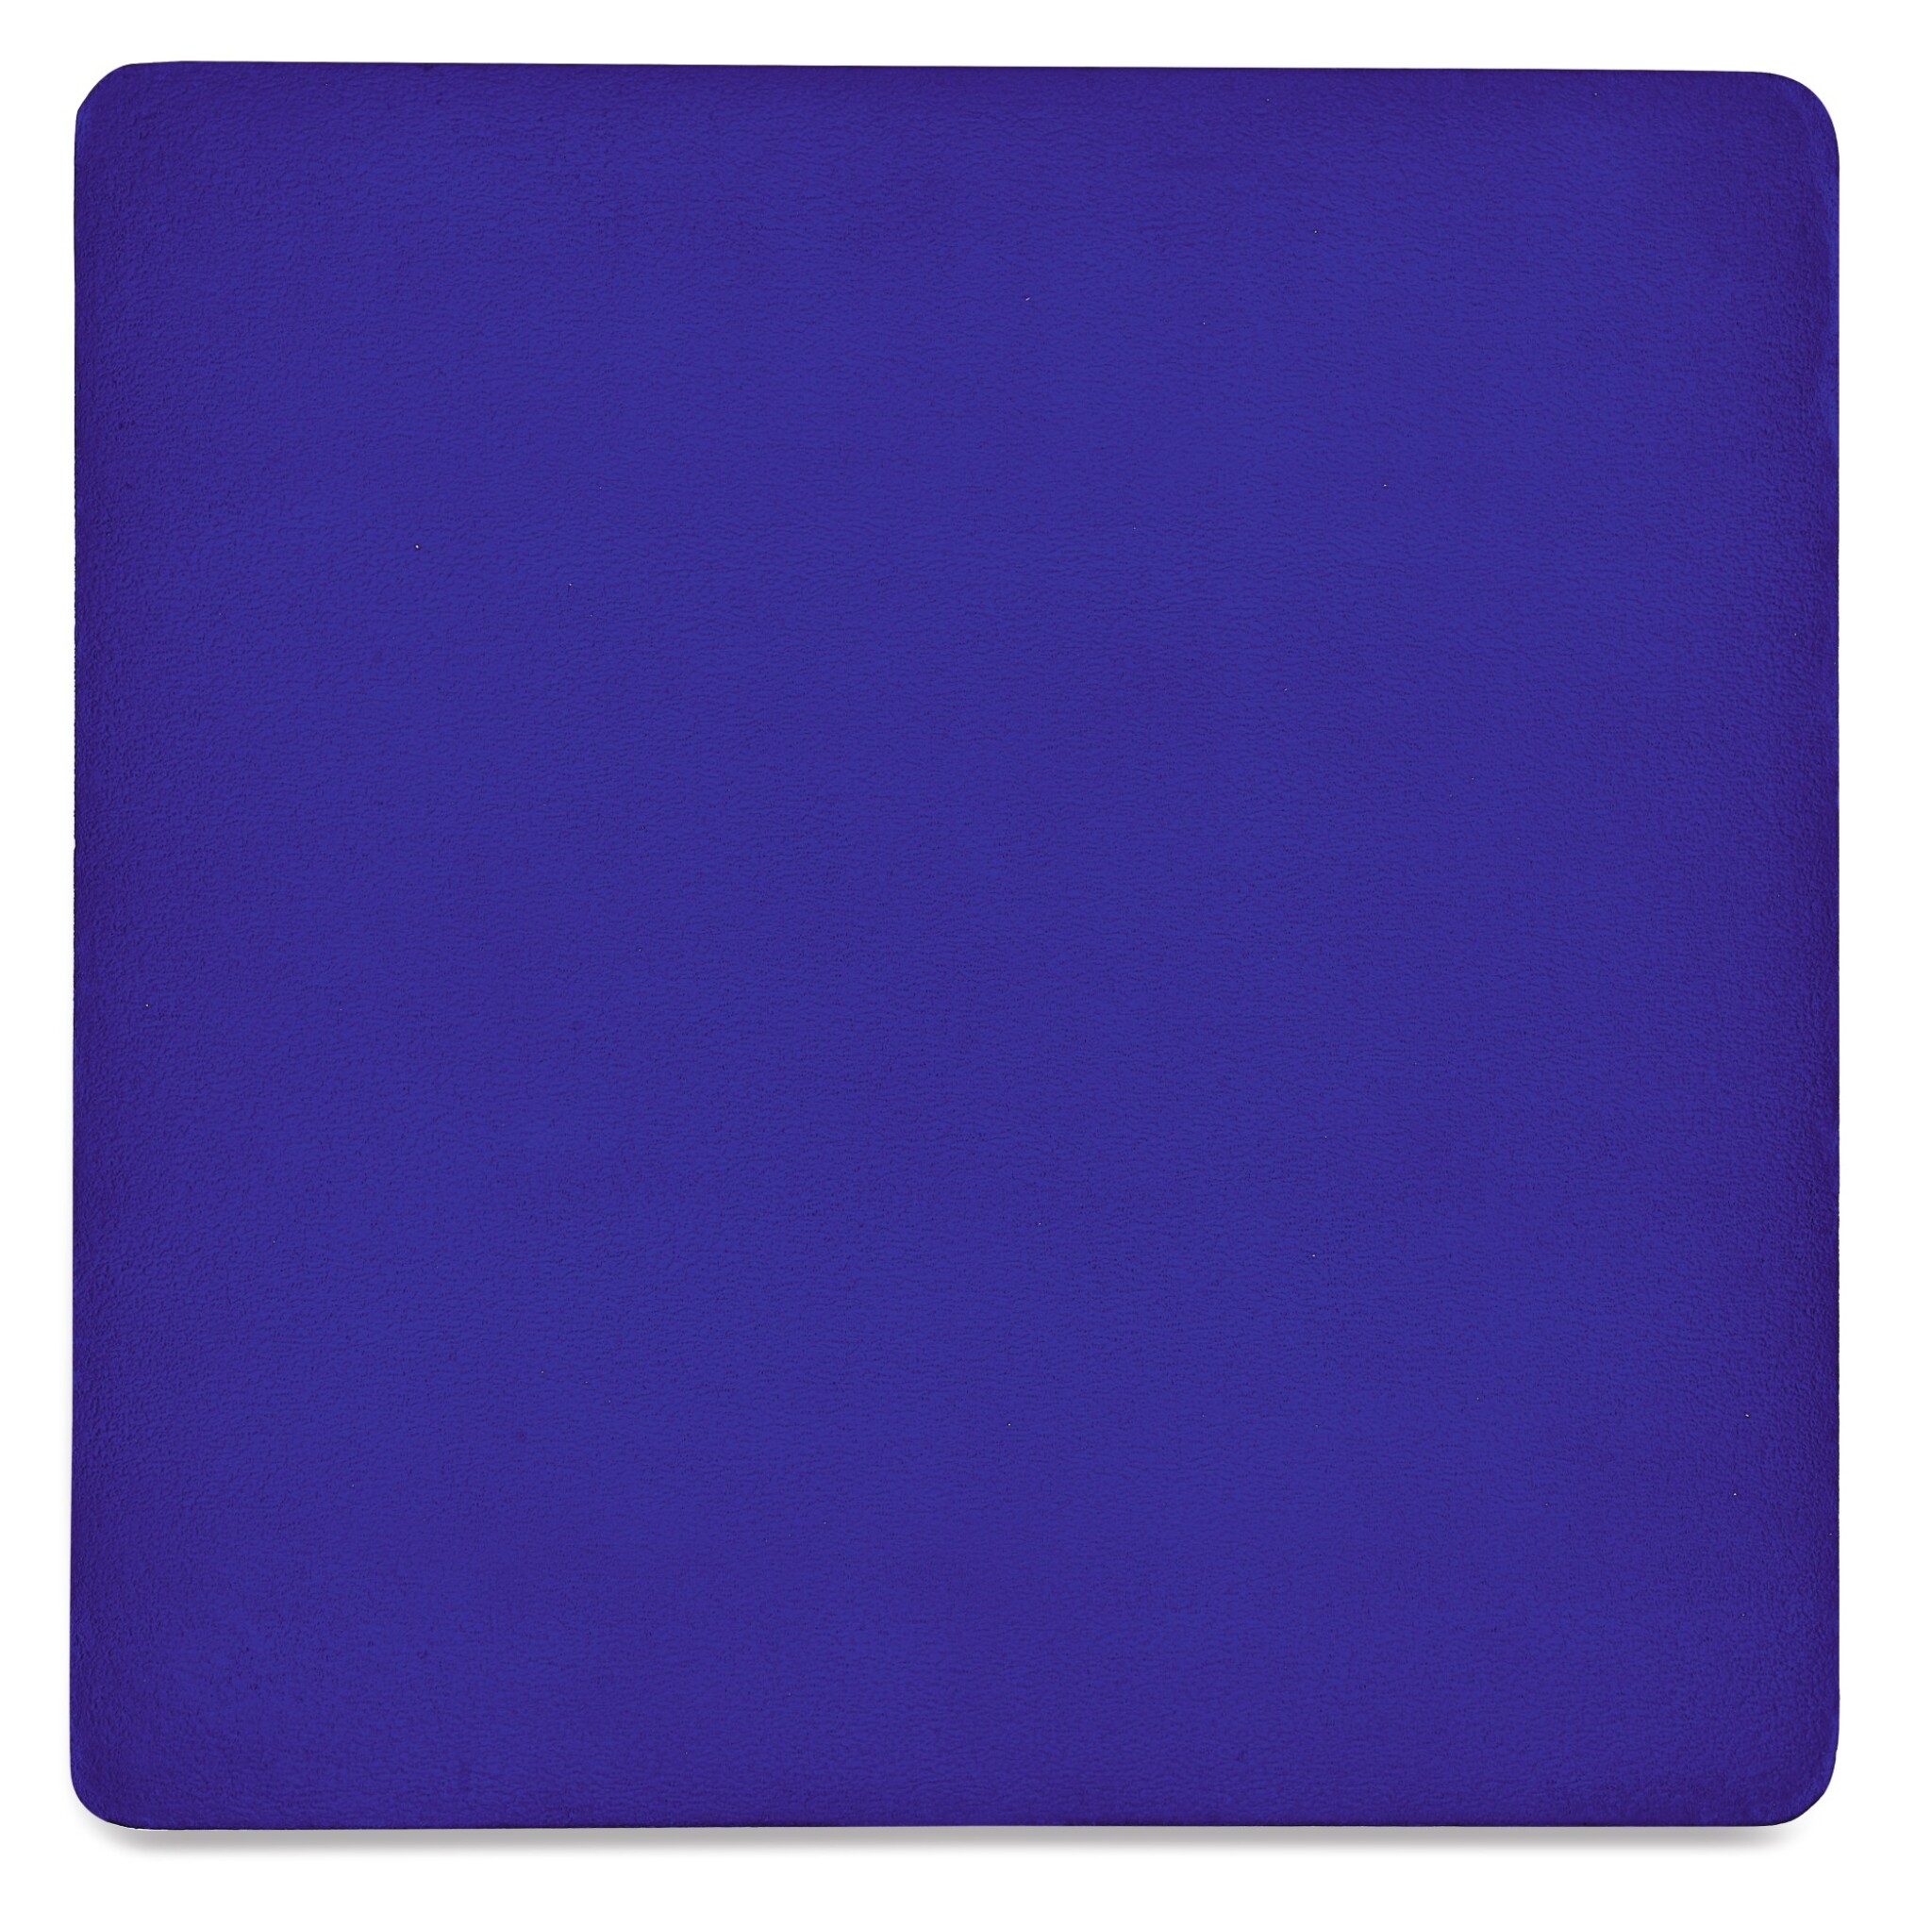 View full screen - View 1 of Lot 33.  YVES KLEIN   UNTITLED BLUE MONOCHROME (IKB 108).